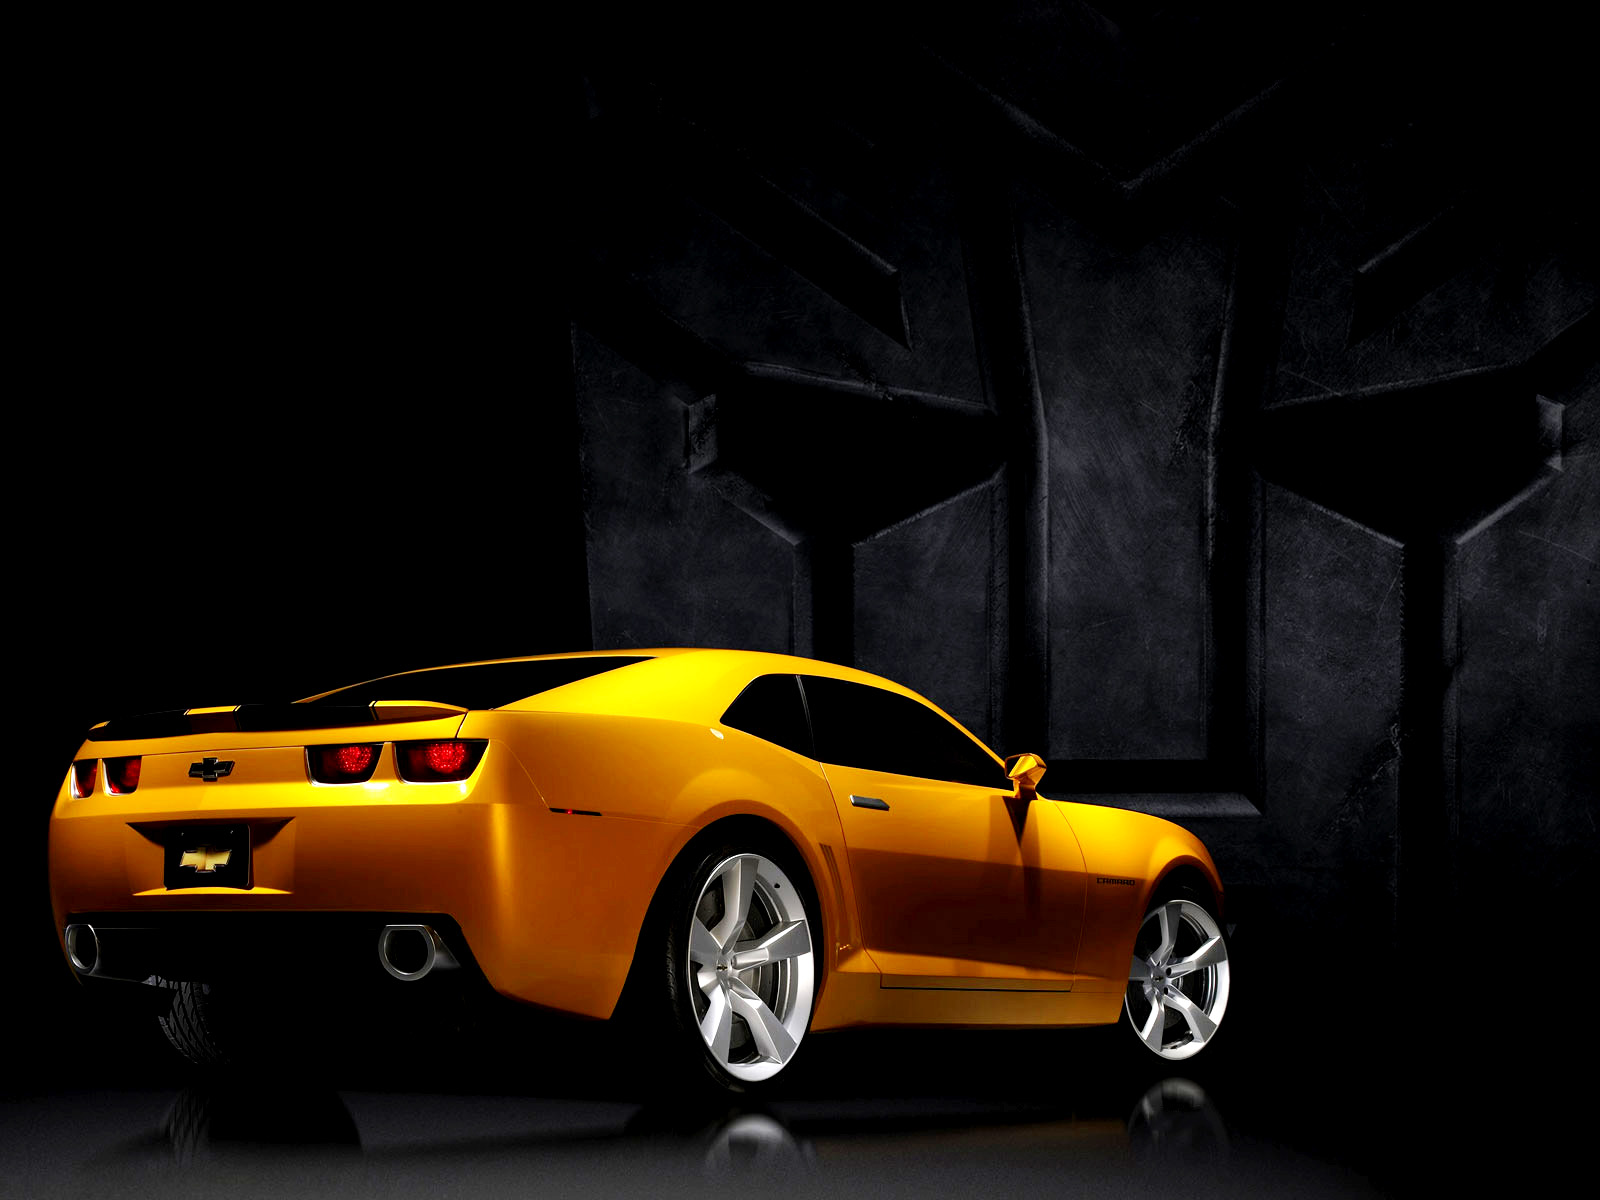 Bumblebee Transformers HD Wallpapers HQ Wallpapers   Wallpapers 1600x1200